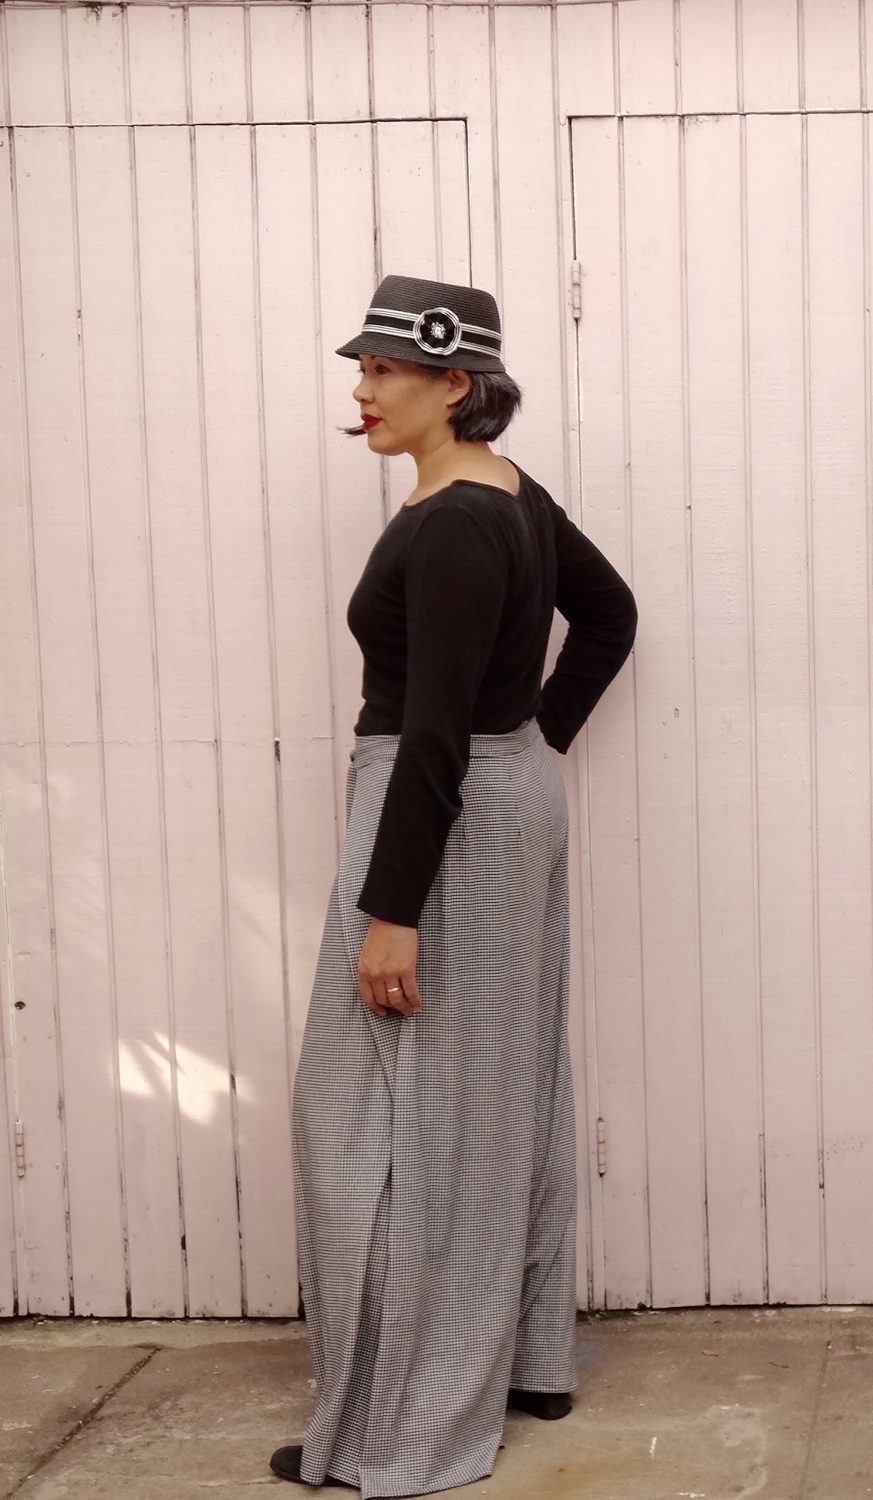 Vogue 9191 - Wrap pants in houndstooth jersey - left view - V9191